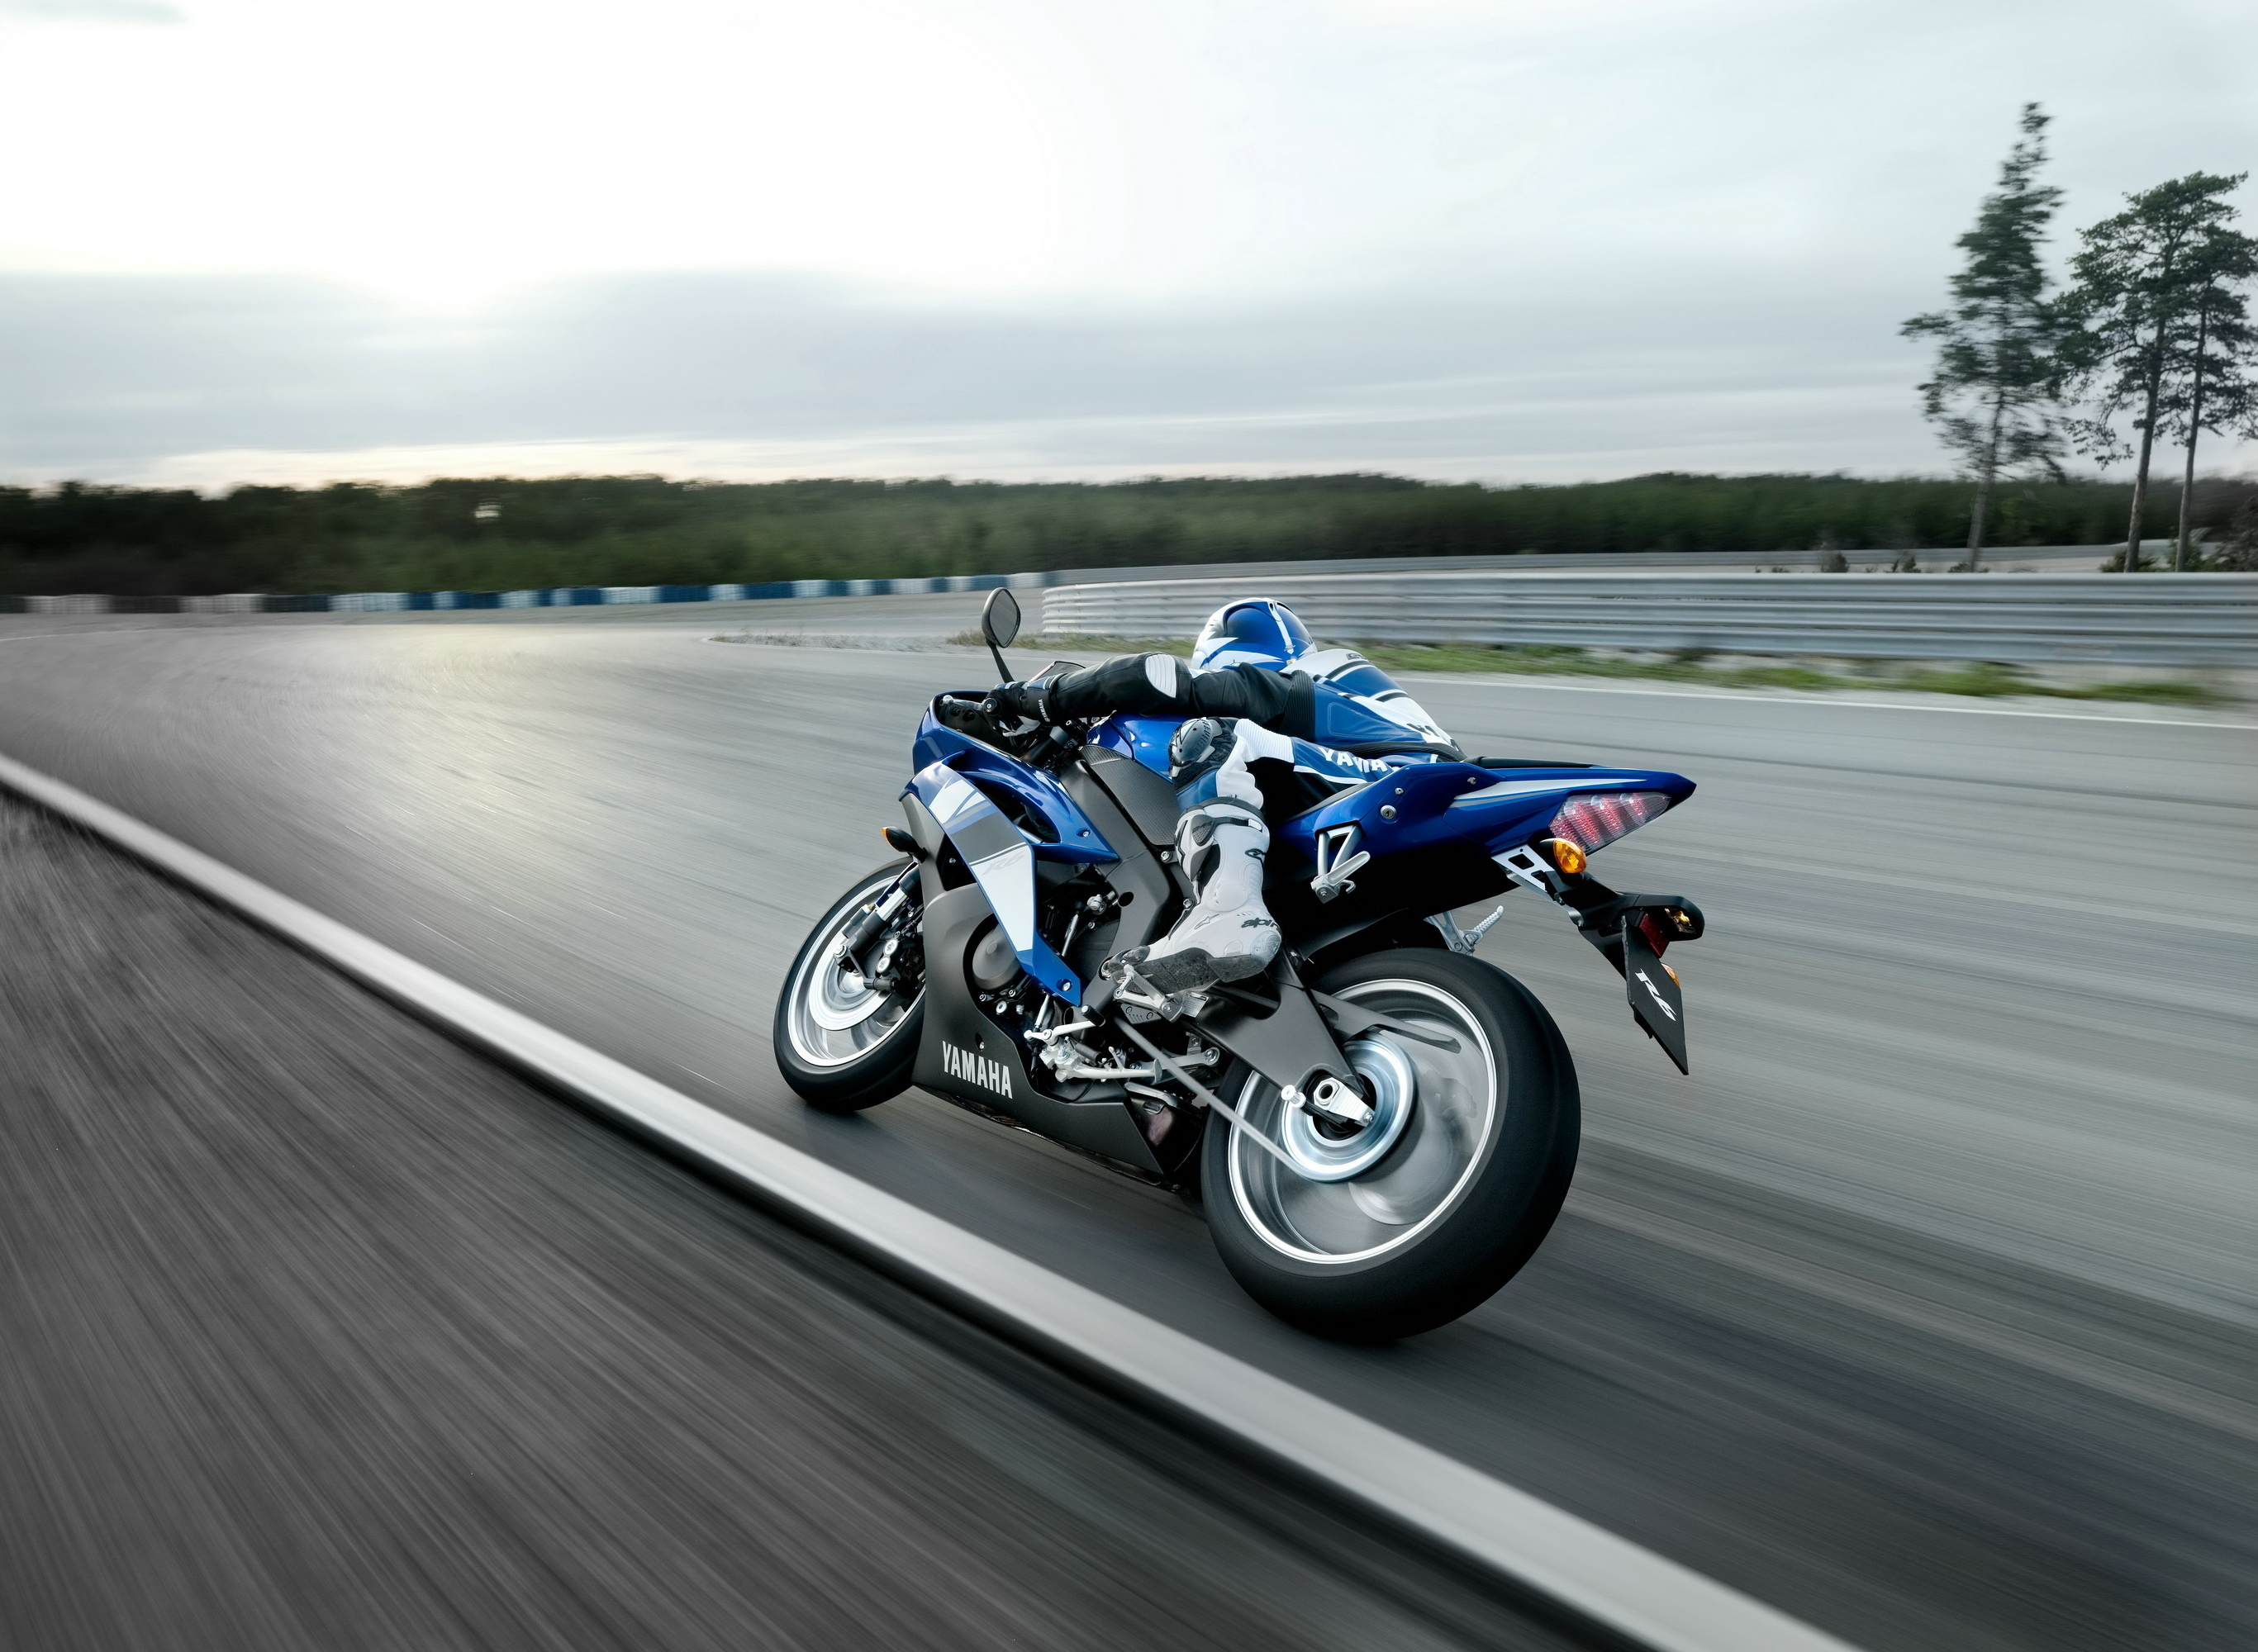 Bike Racing Wallpaper Hd 42 Motorcycle Racing Hd Wallpapers Background Images